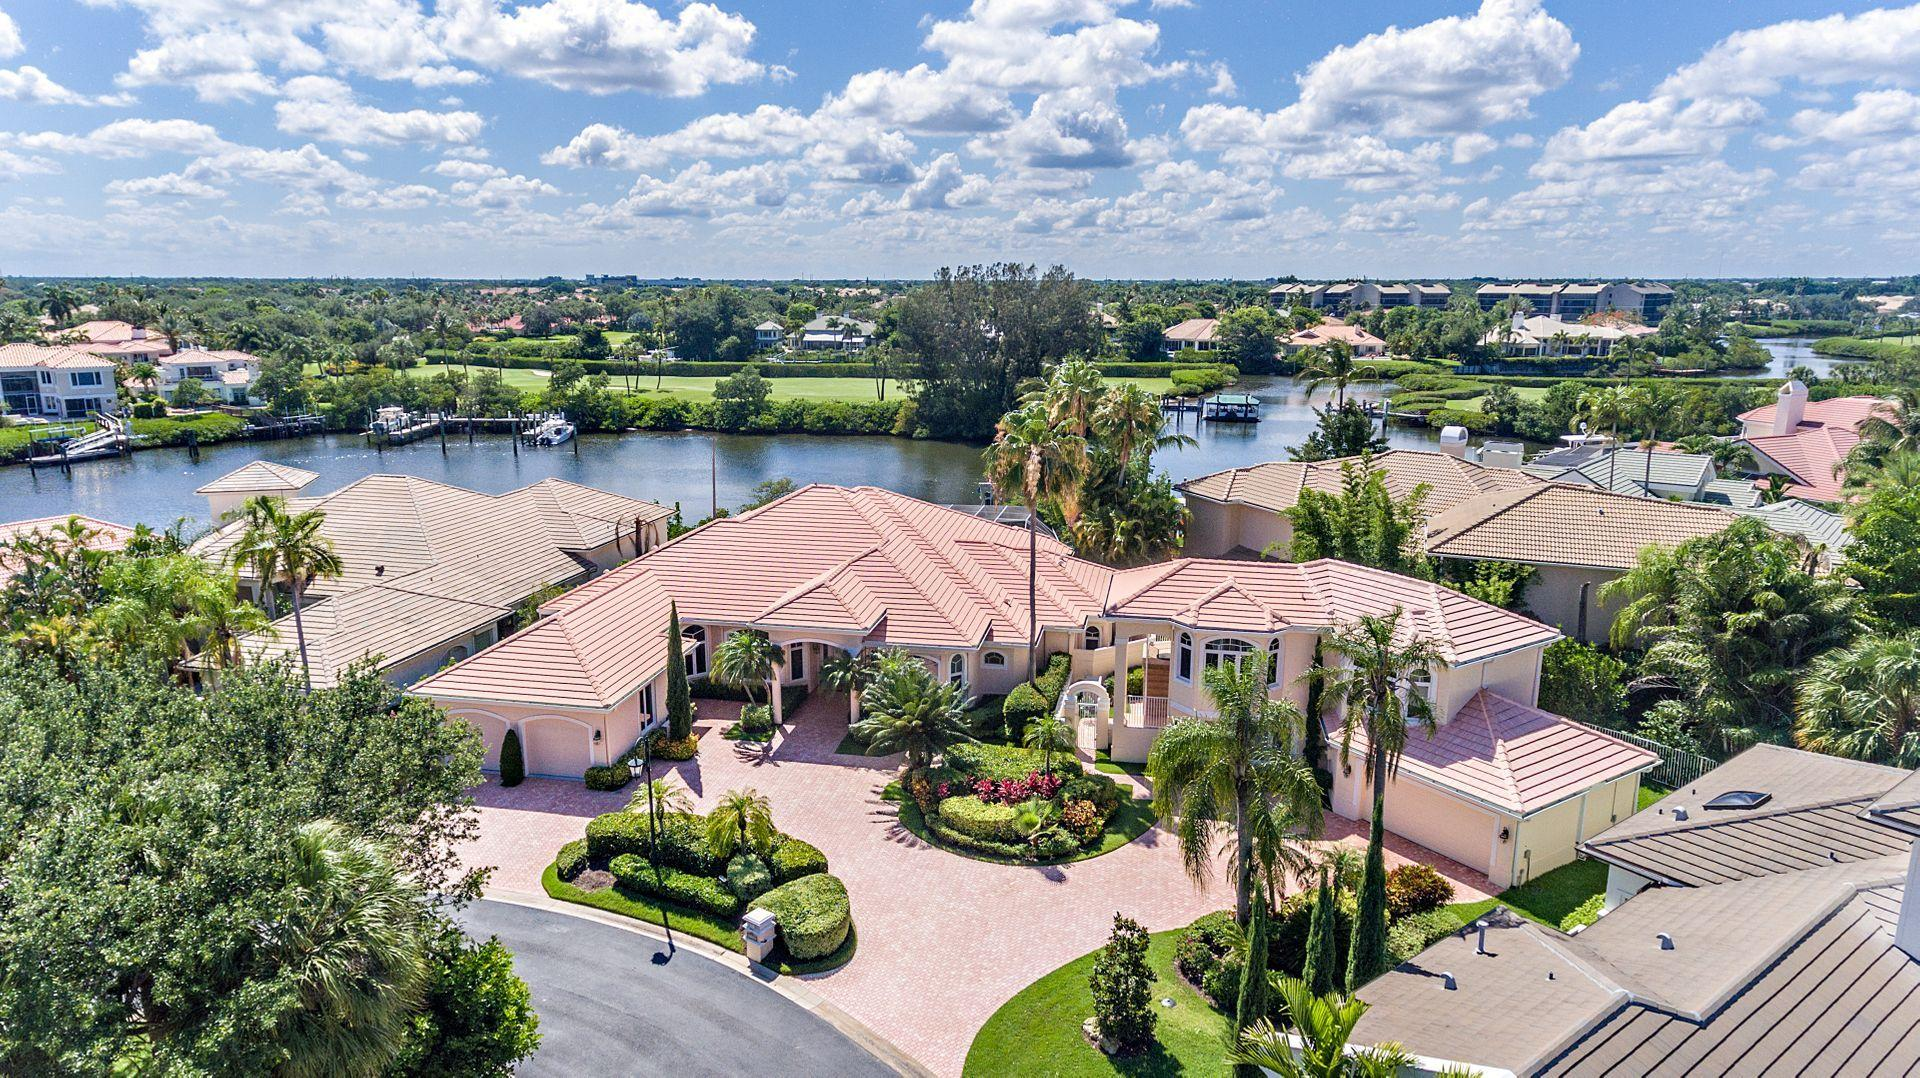 16757 Port Royal Circle, Jupiter, Florida 33477, 3 Bedrooms Bedrooms, ,3.1 BathroomsBathrooms,A,Single family,Port Royal,RX-10533982